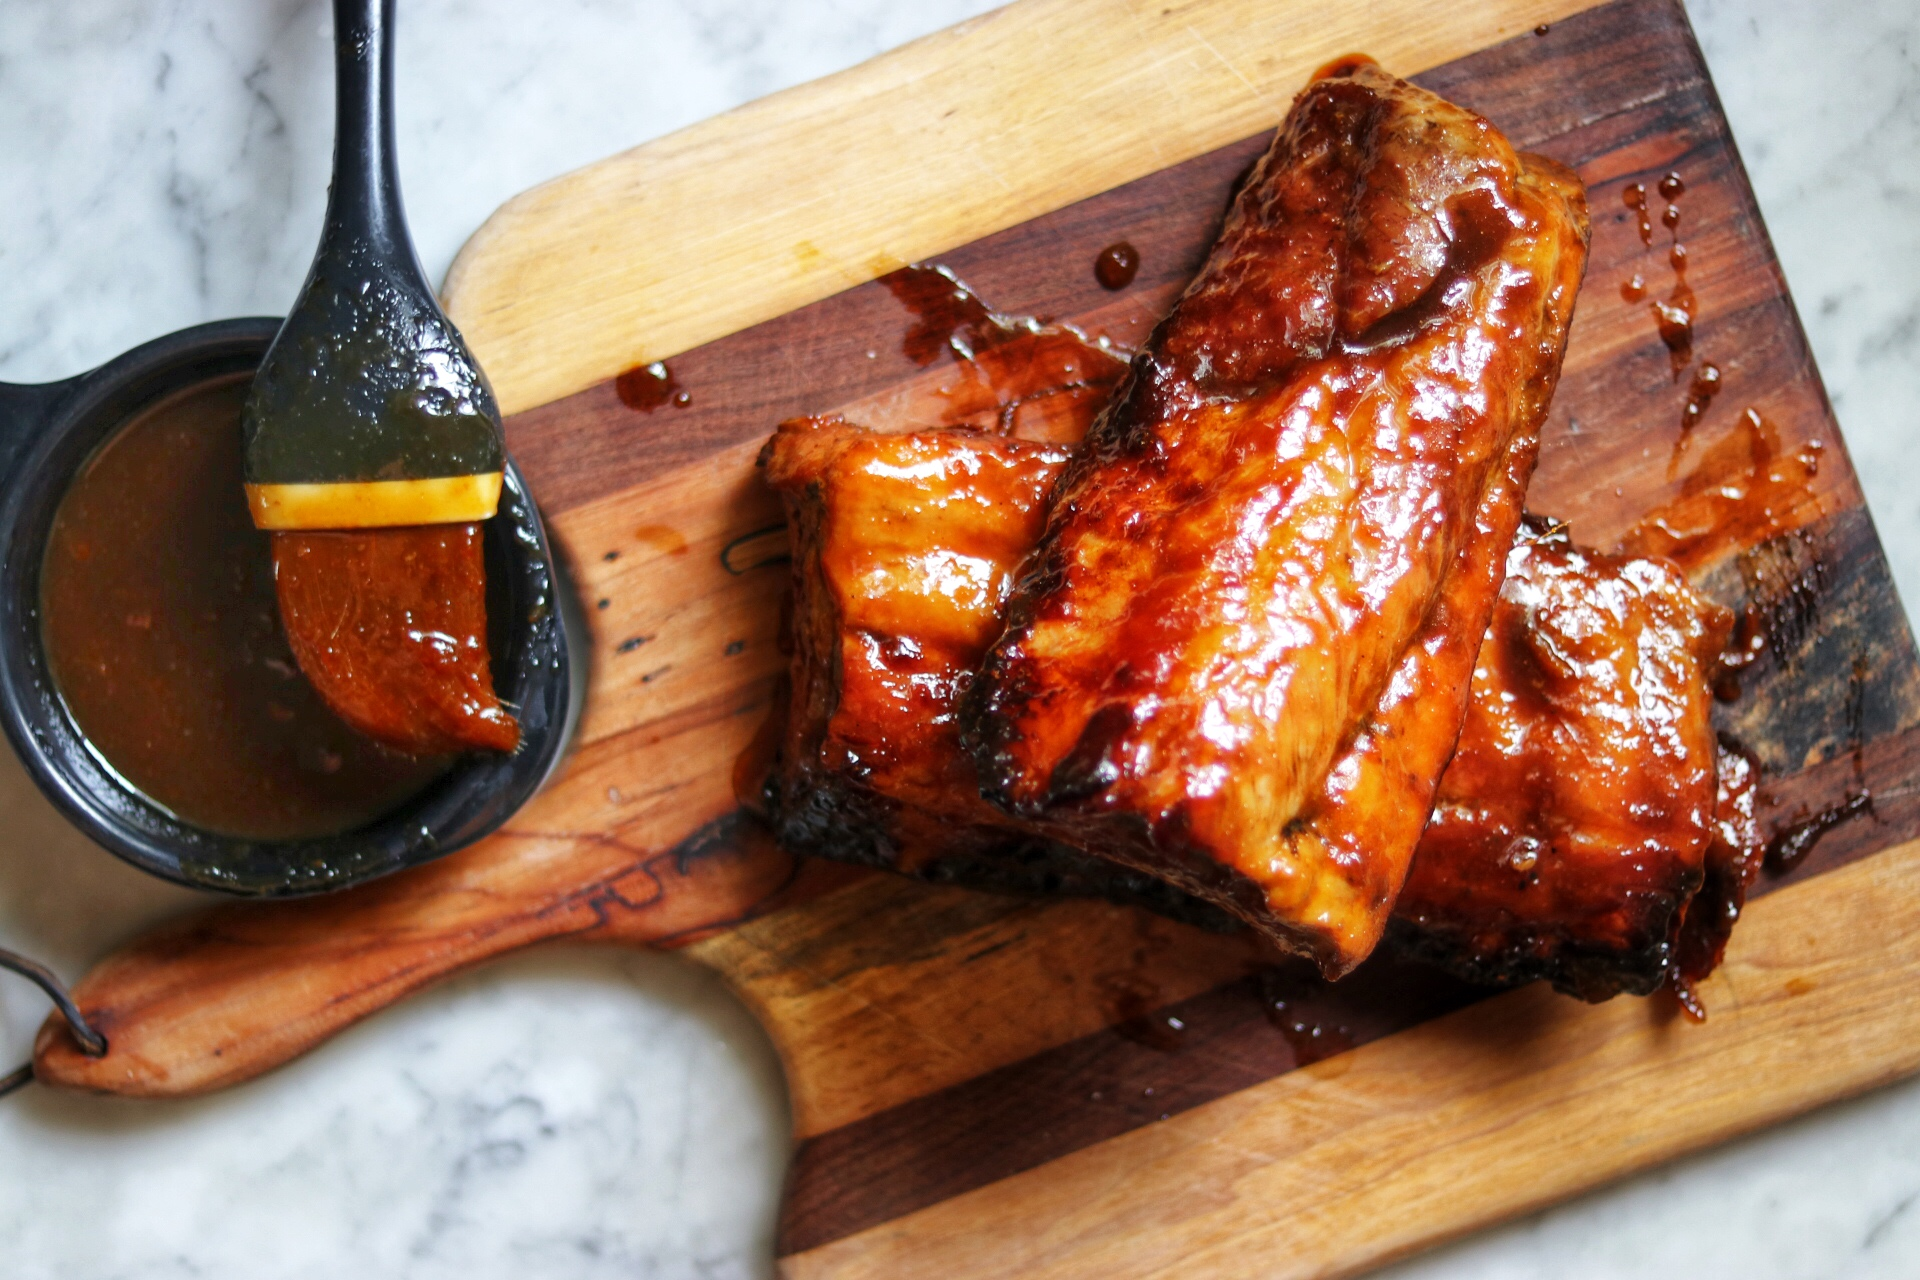 Apricot-Glazed Pork Ribs